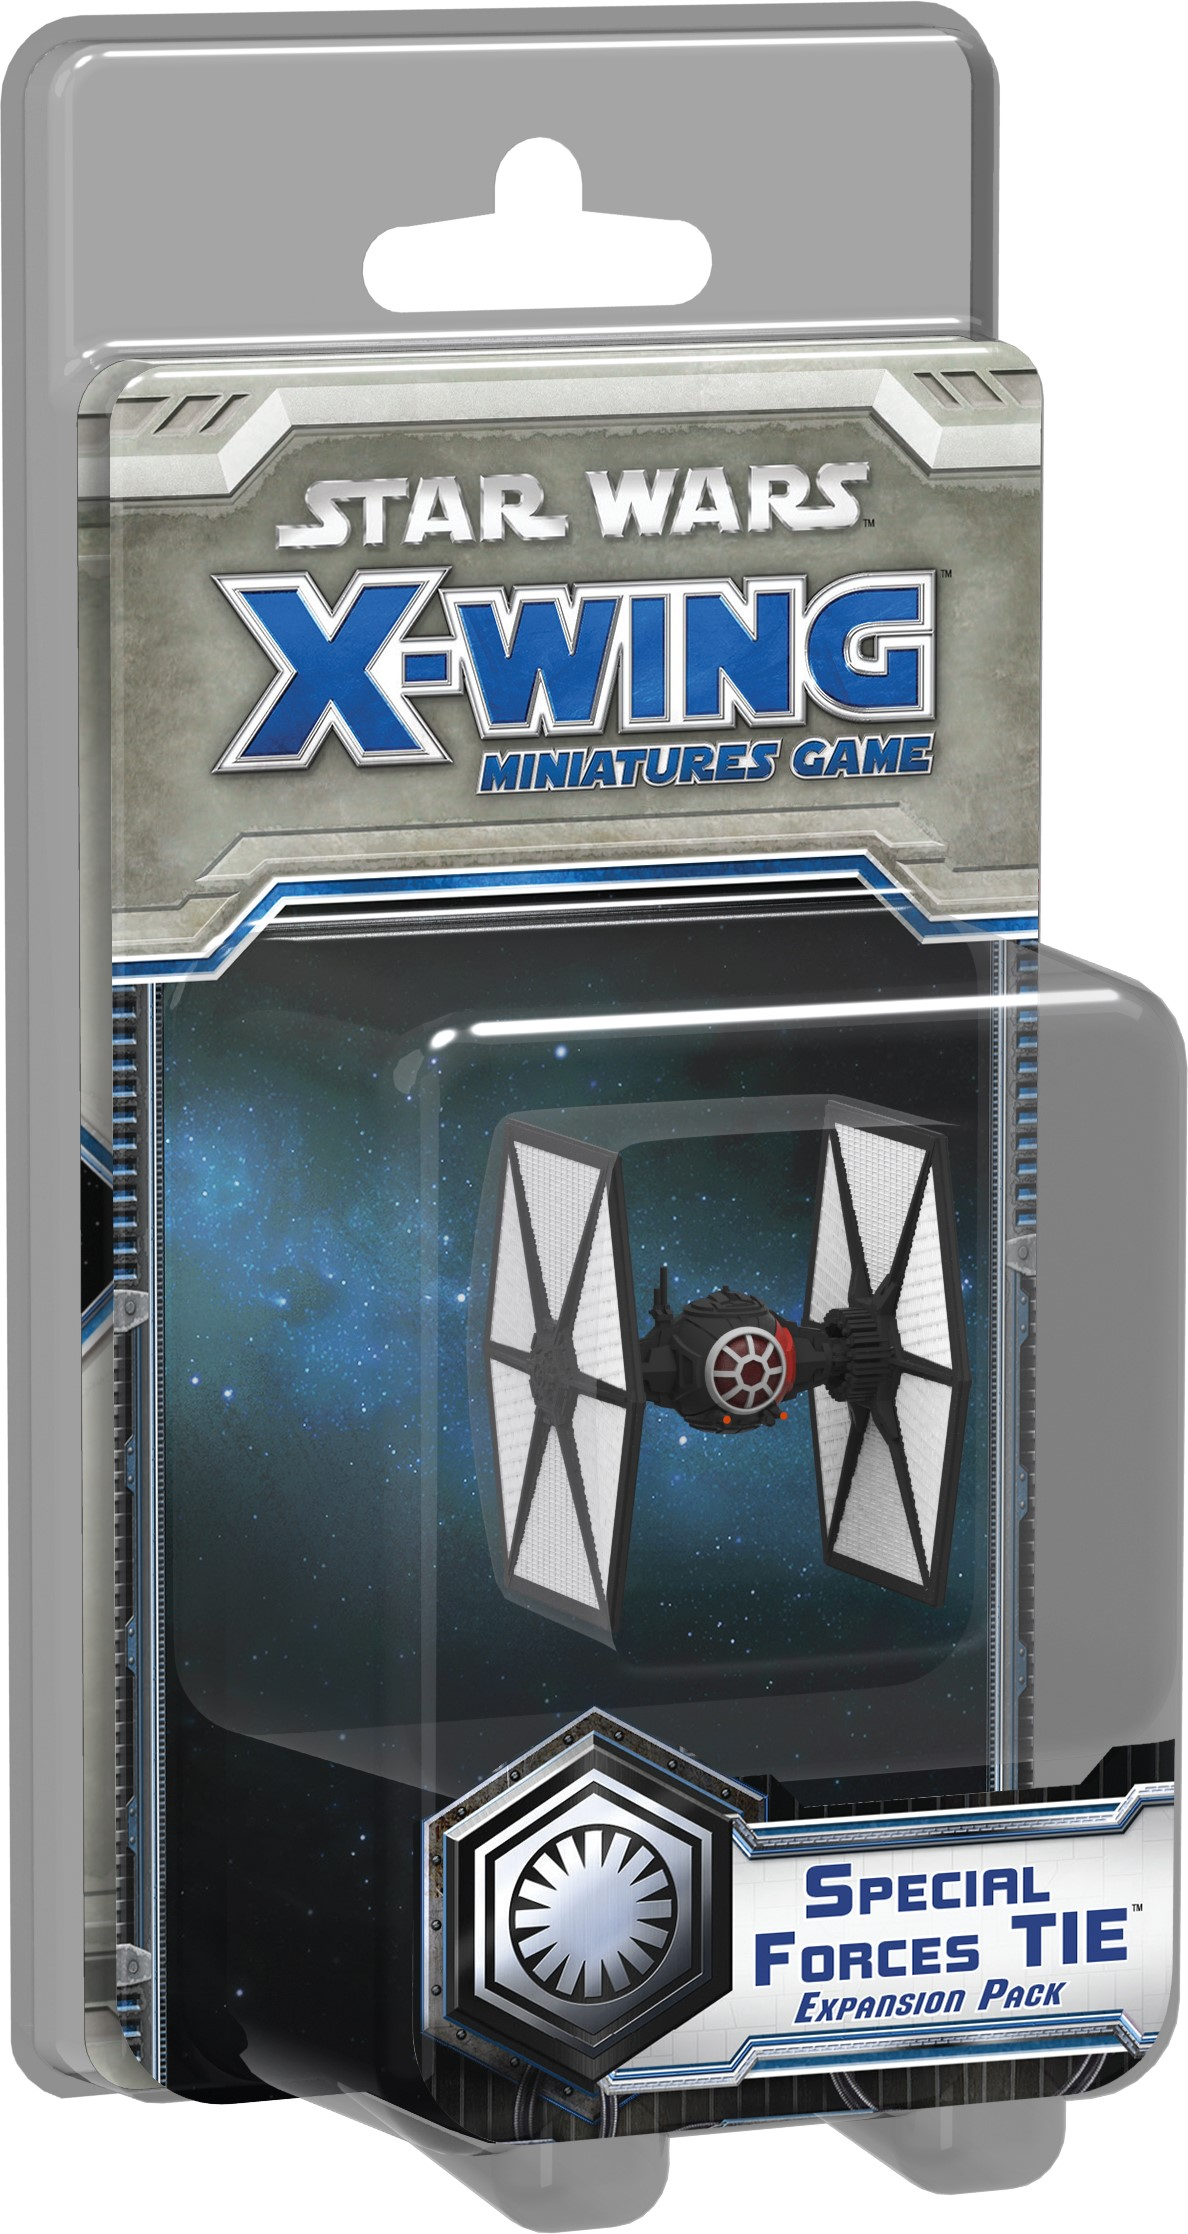 Star Wars X-Wing: Special Forces TIE